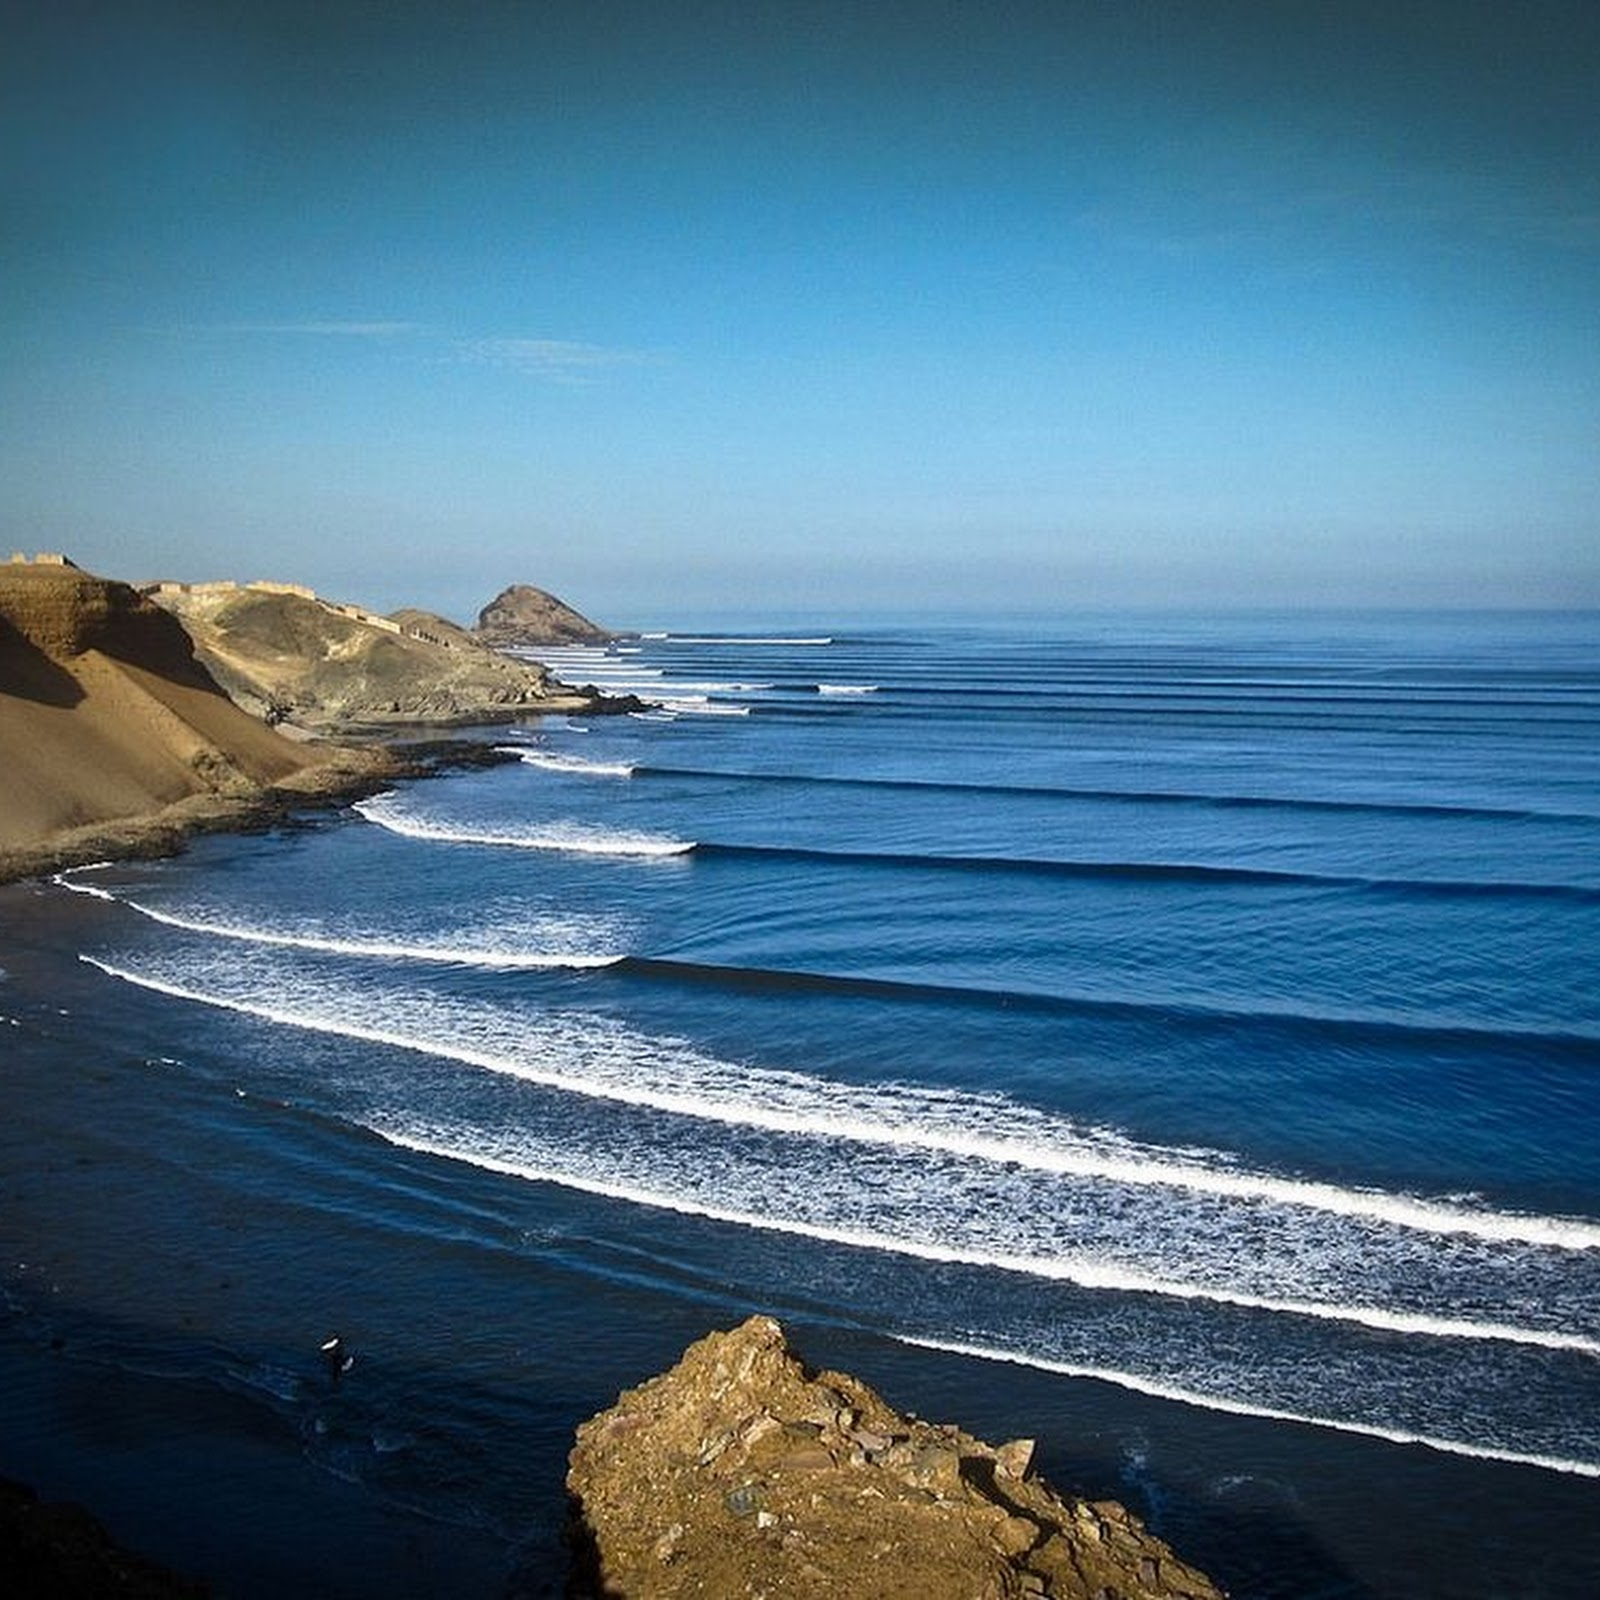 The World's Longest Surfing Wave at Chicama, Peru